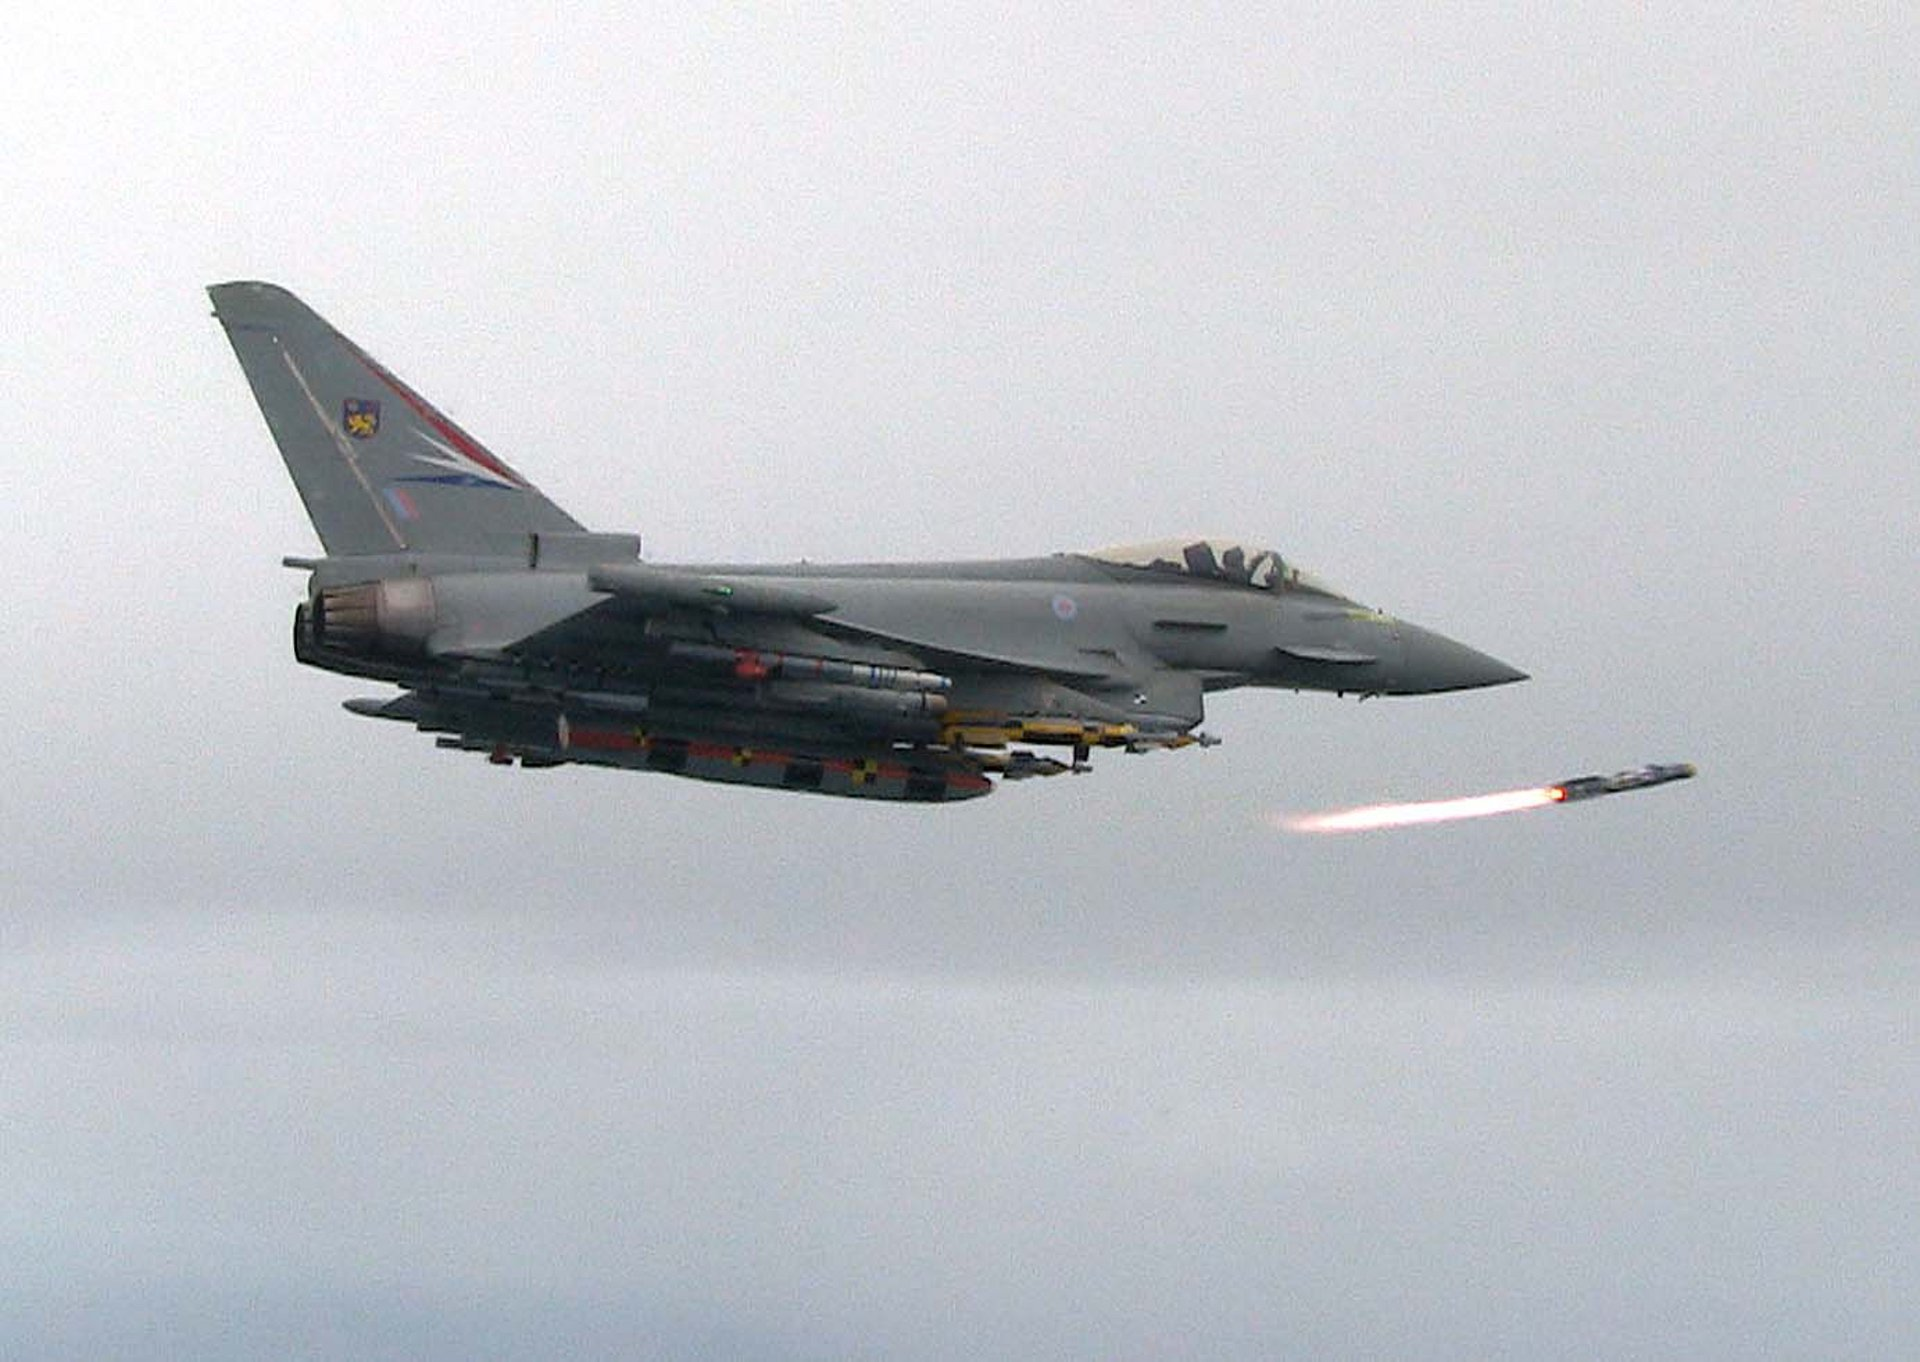 A Eurofighter Typhoon swing-role fighter aircraft launches an air-to-air missile.